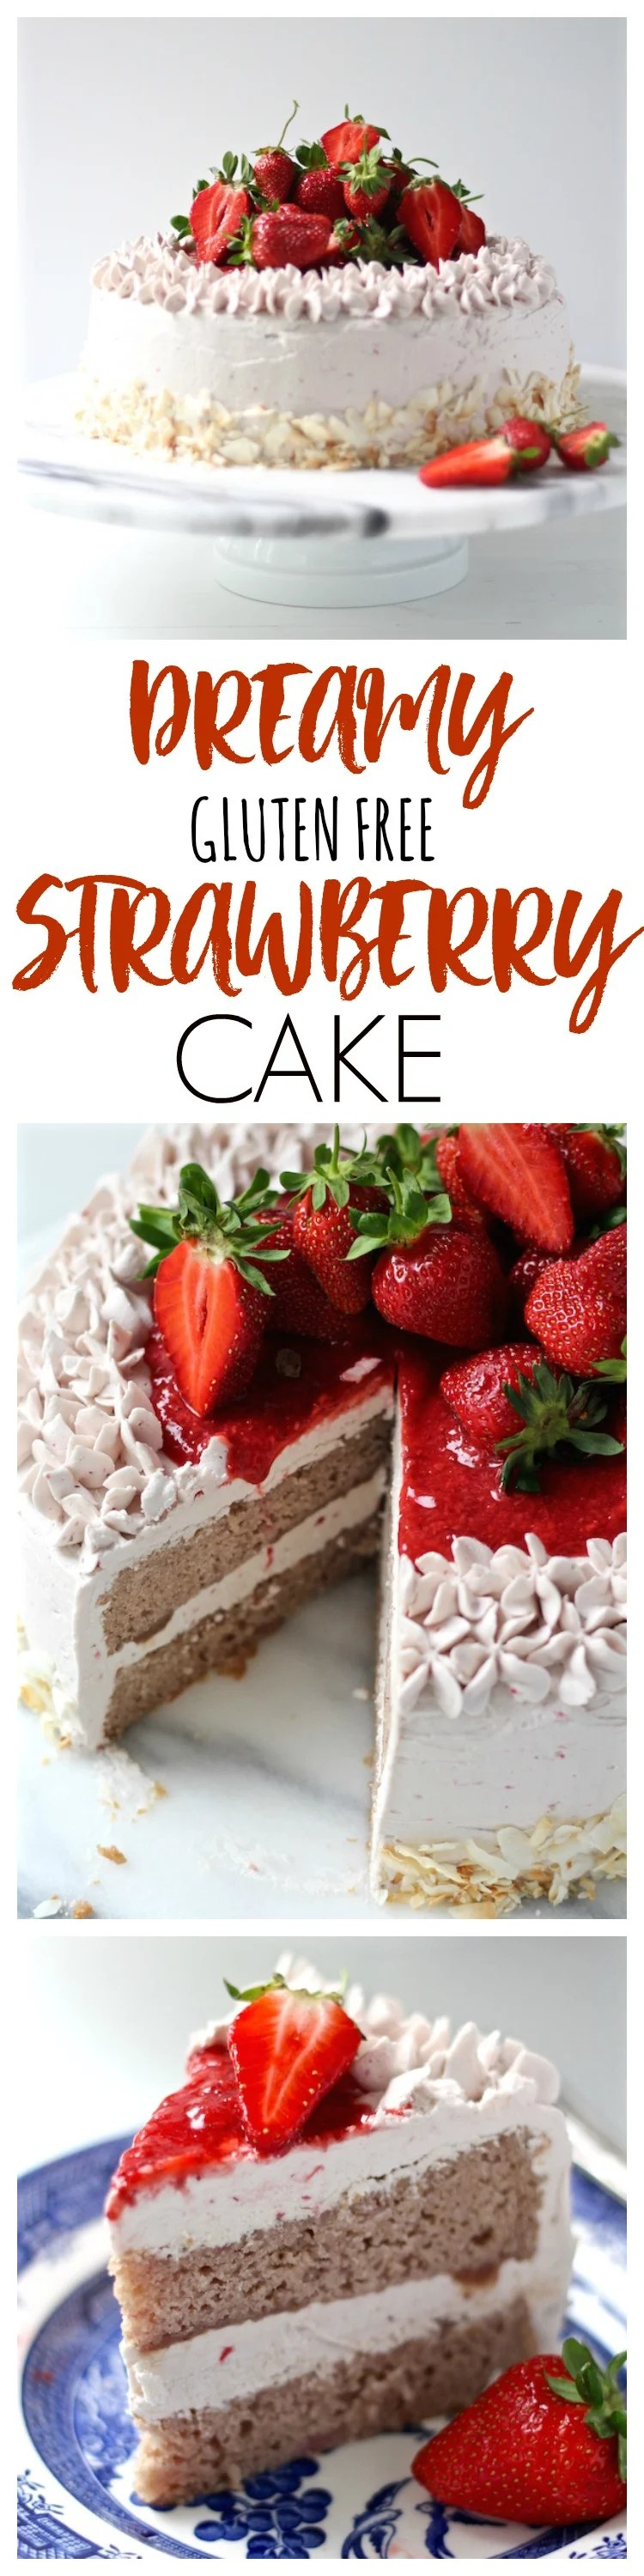 gluten free strawberry cake pinterest